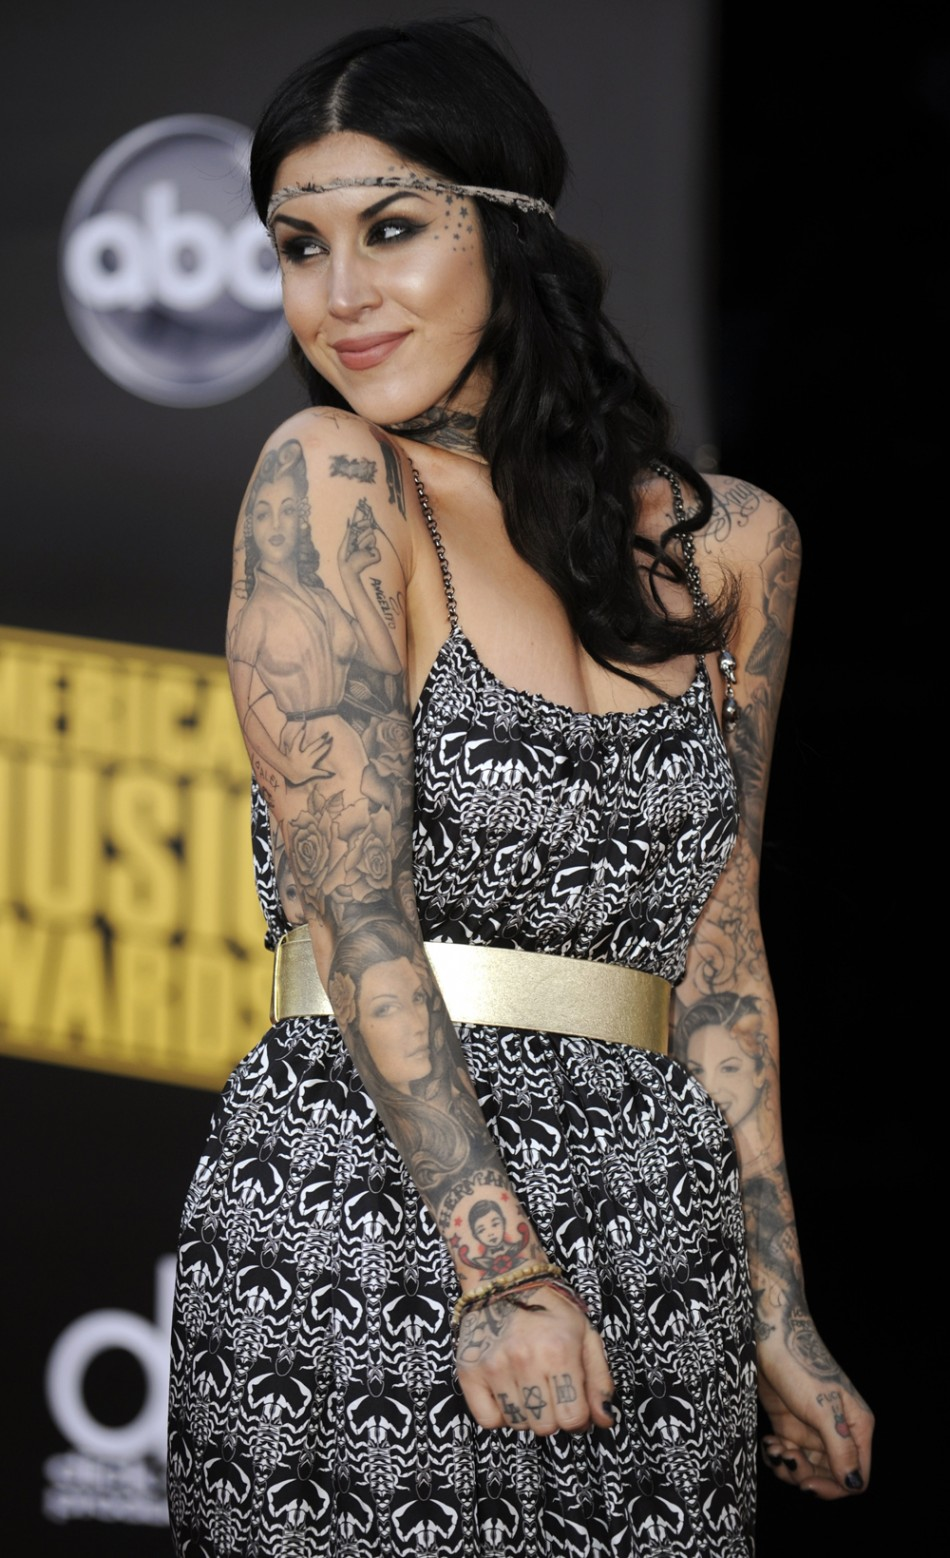 Tattoo Girl Von - Kat von d and jesse james break up again international business times